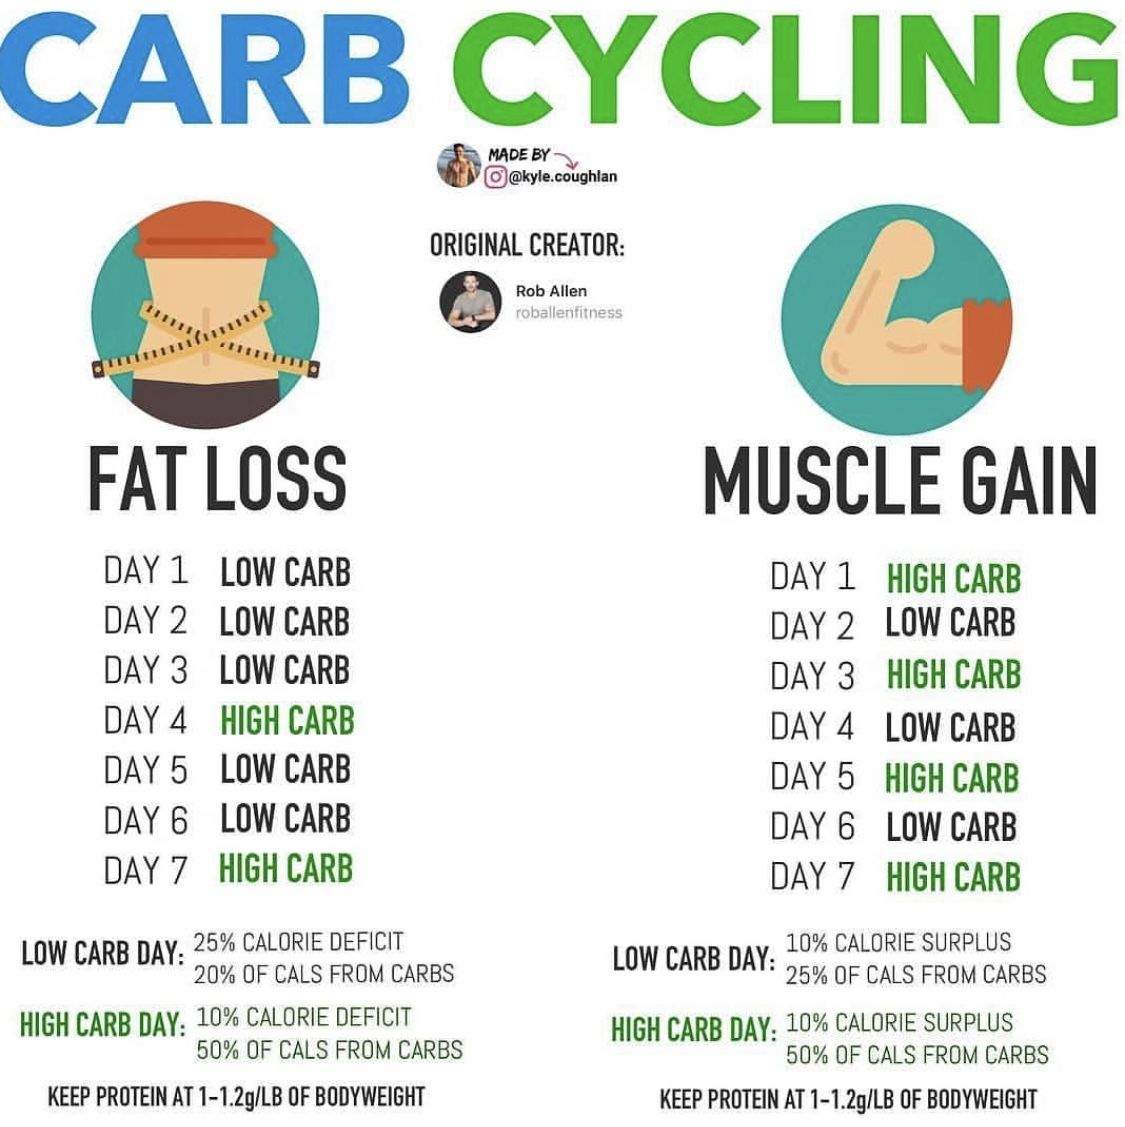 Pin by Manayer on Nutrition | Carb cycling diet, Carb ...